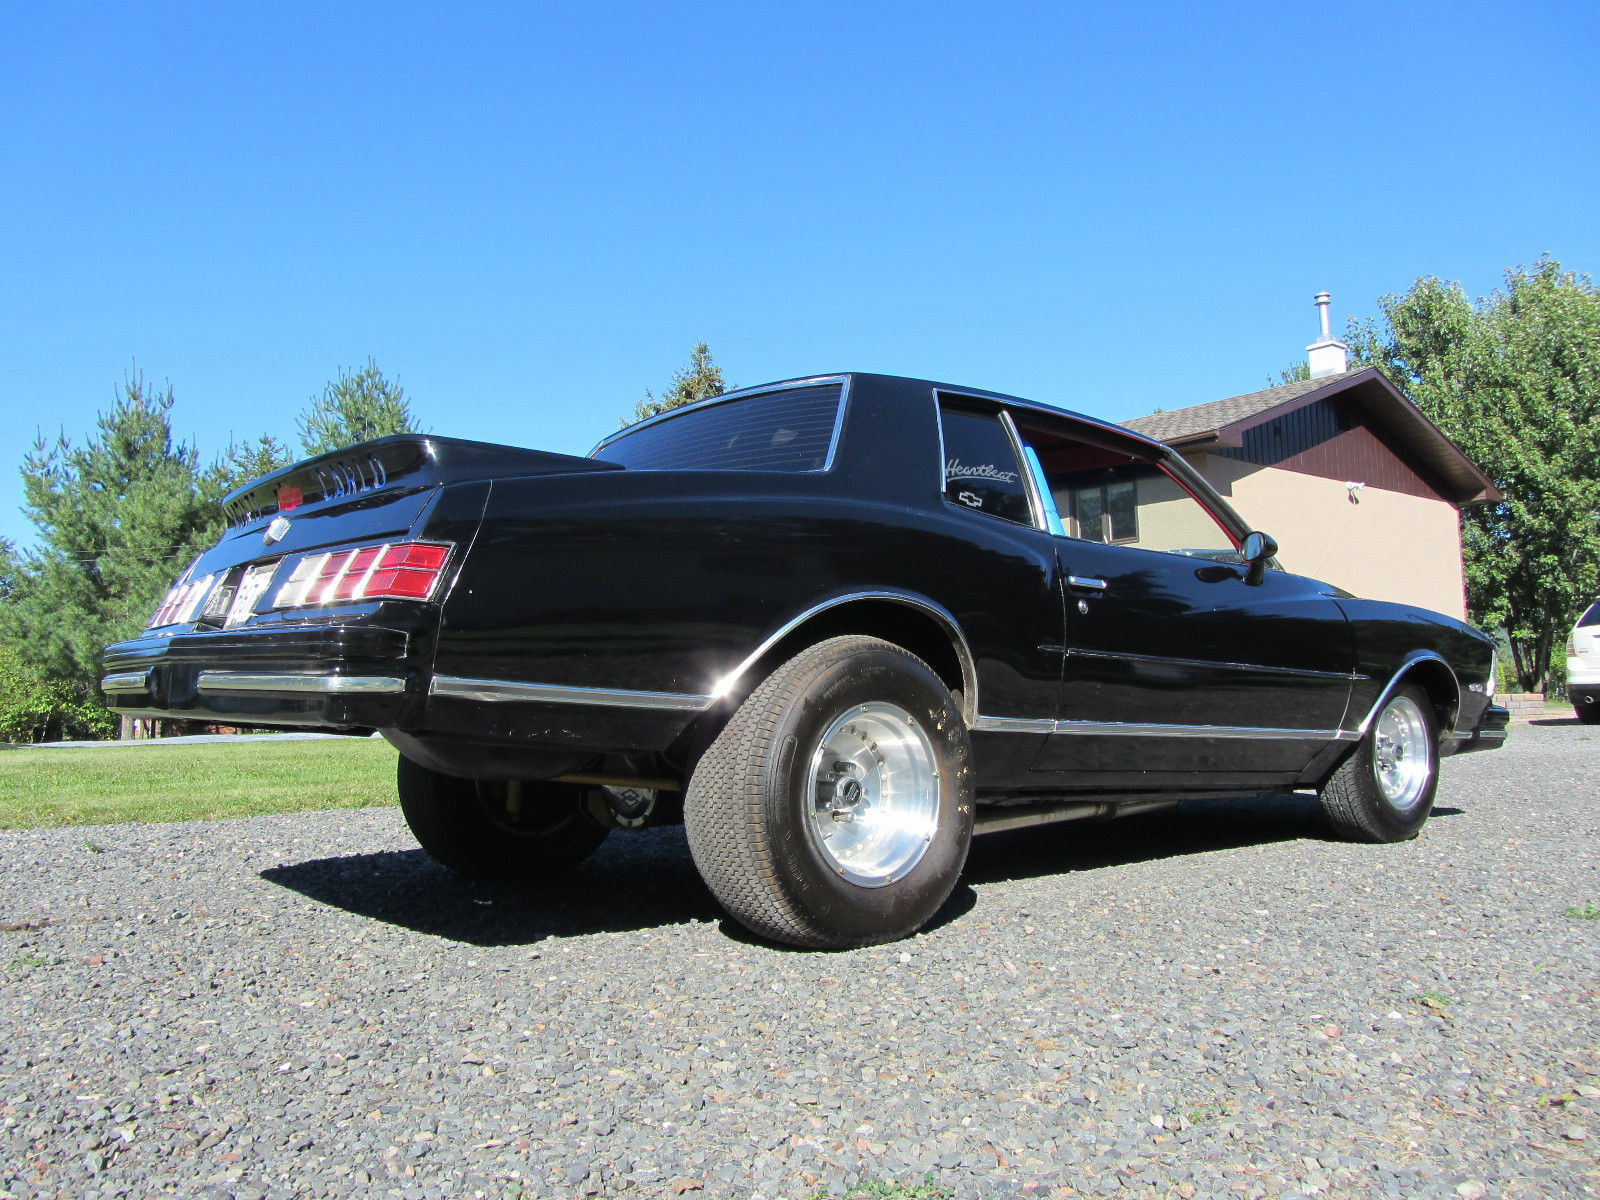 1979 Chevrolet Monte carlo SS supercharger 6-71 blower